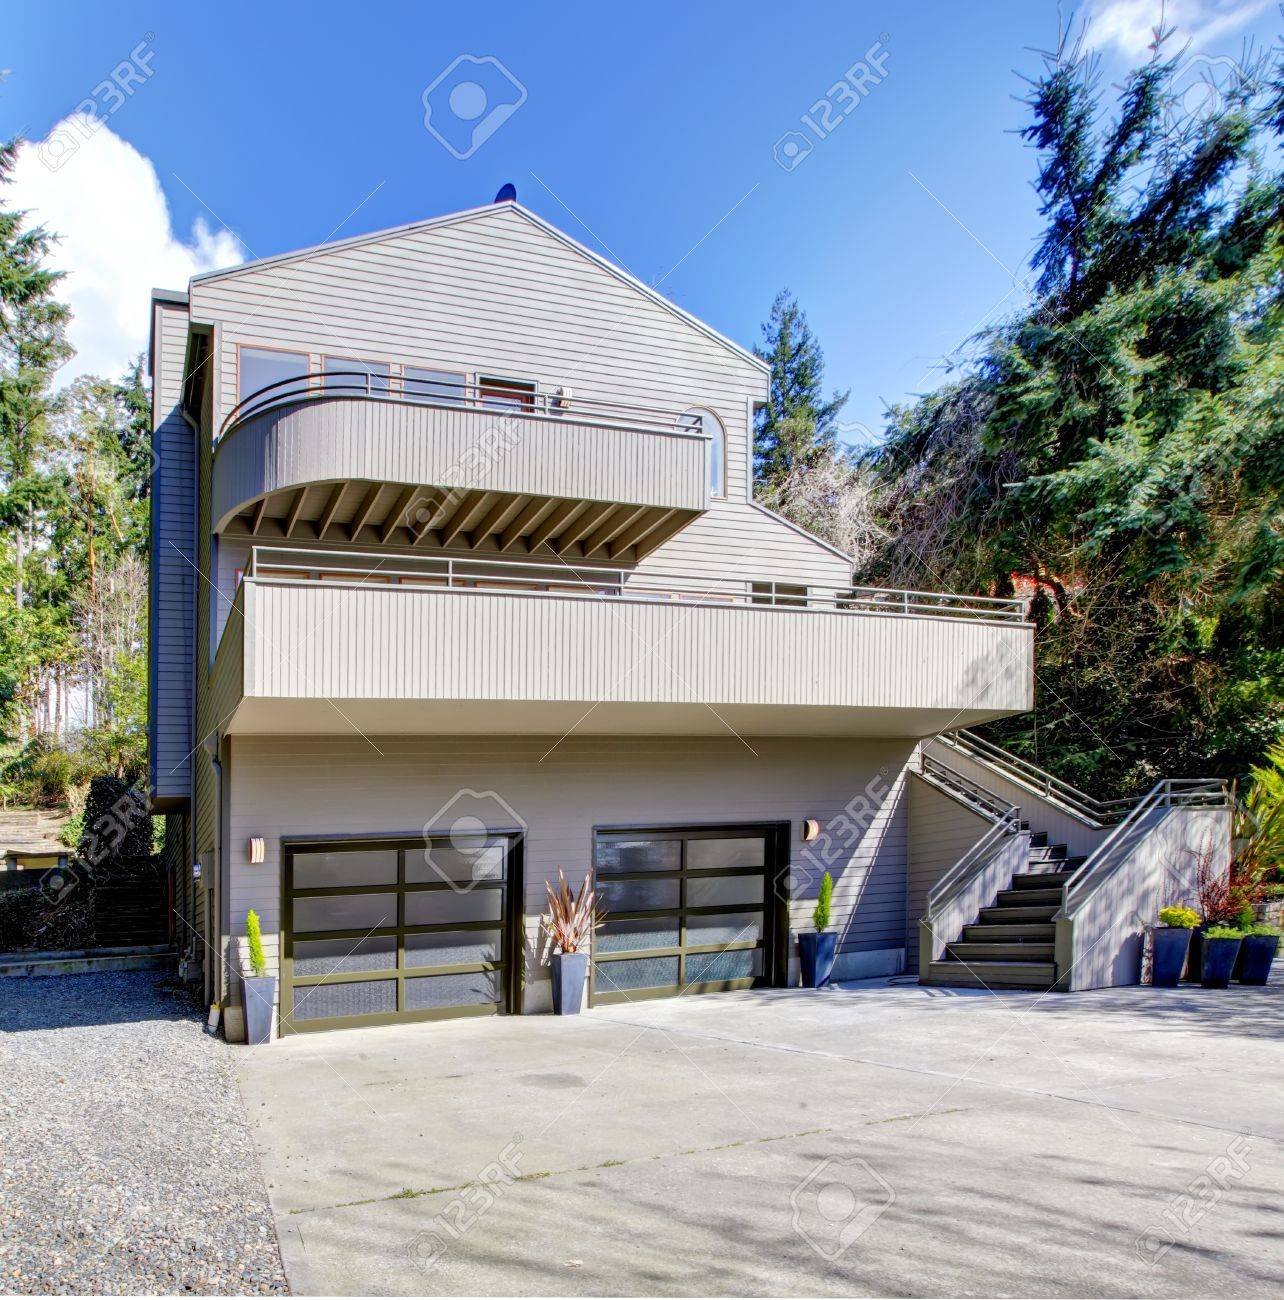 Light brown modern house exterior in spring forest with cherry blossom. Stock Photo - 13122544